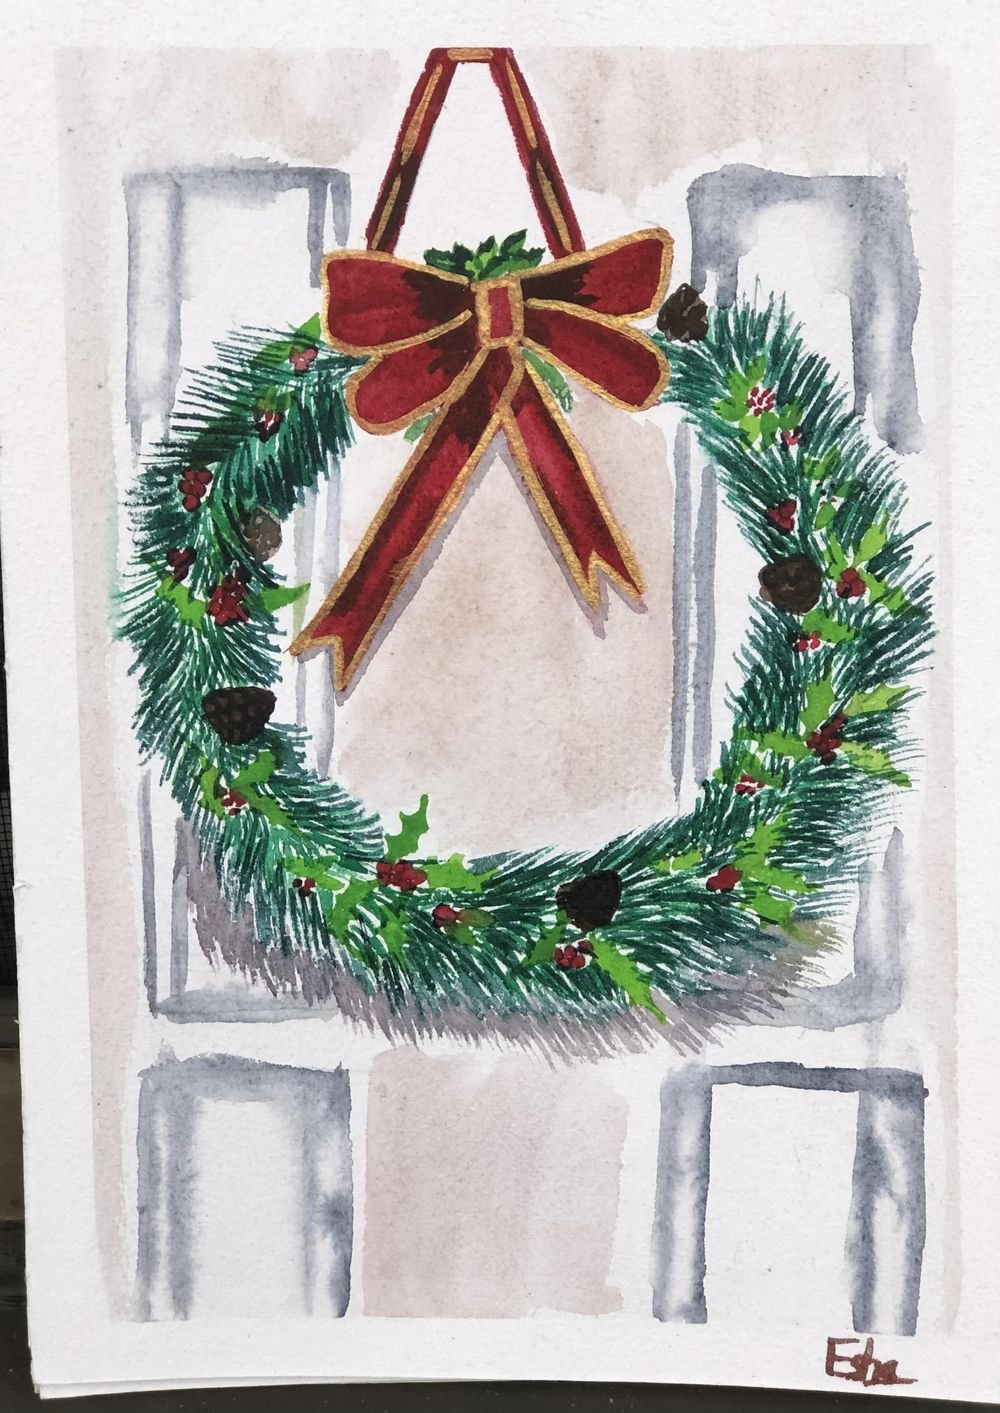 2020 Christmas - image 2 - student project